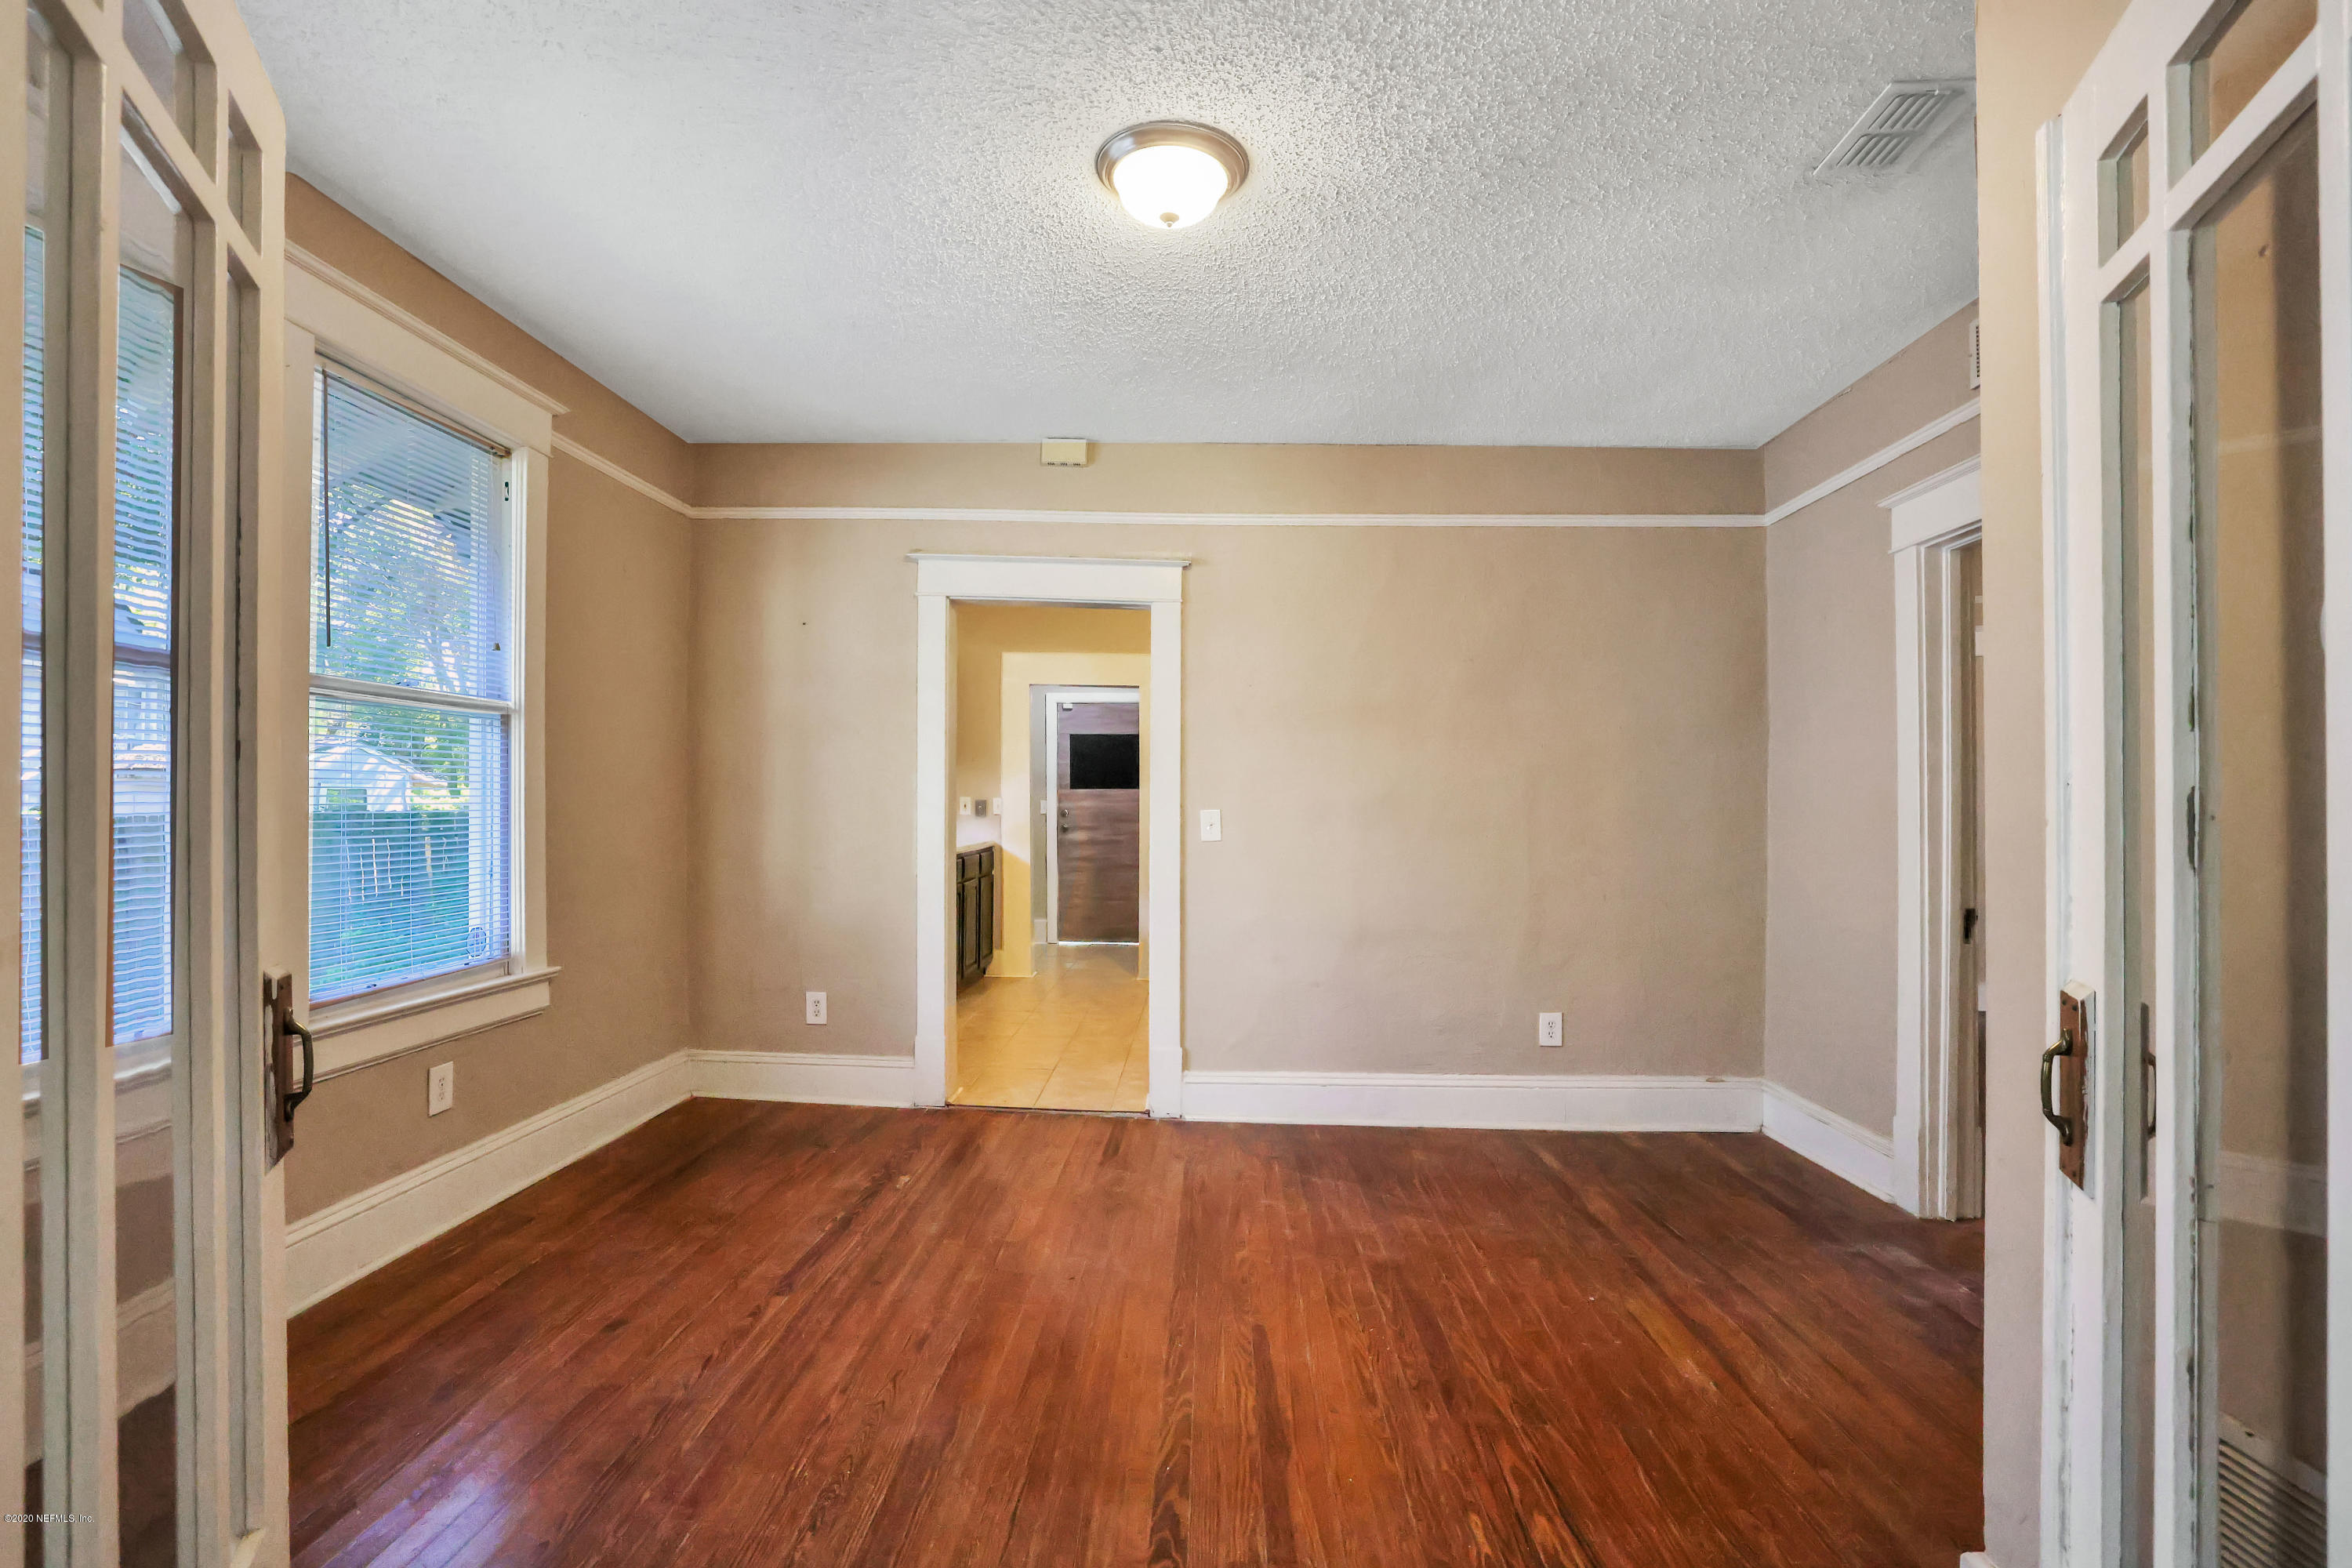 2330 GILMORE, JACKSONVILLE, FLORIDA 32204, 3 Bedrooms Bedrooms, ,1 BathroomBathrooms,Residential,For sale,GILMORE,1083378